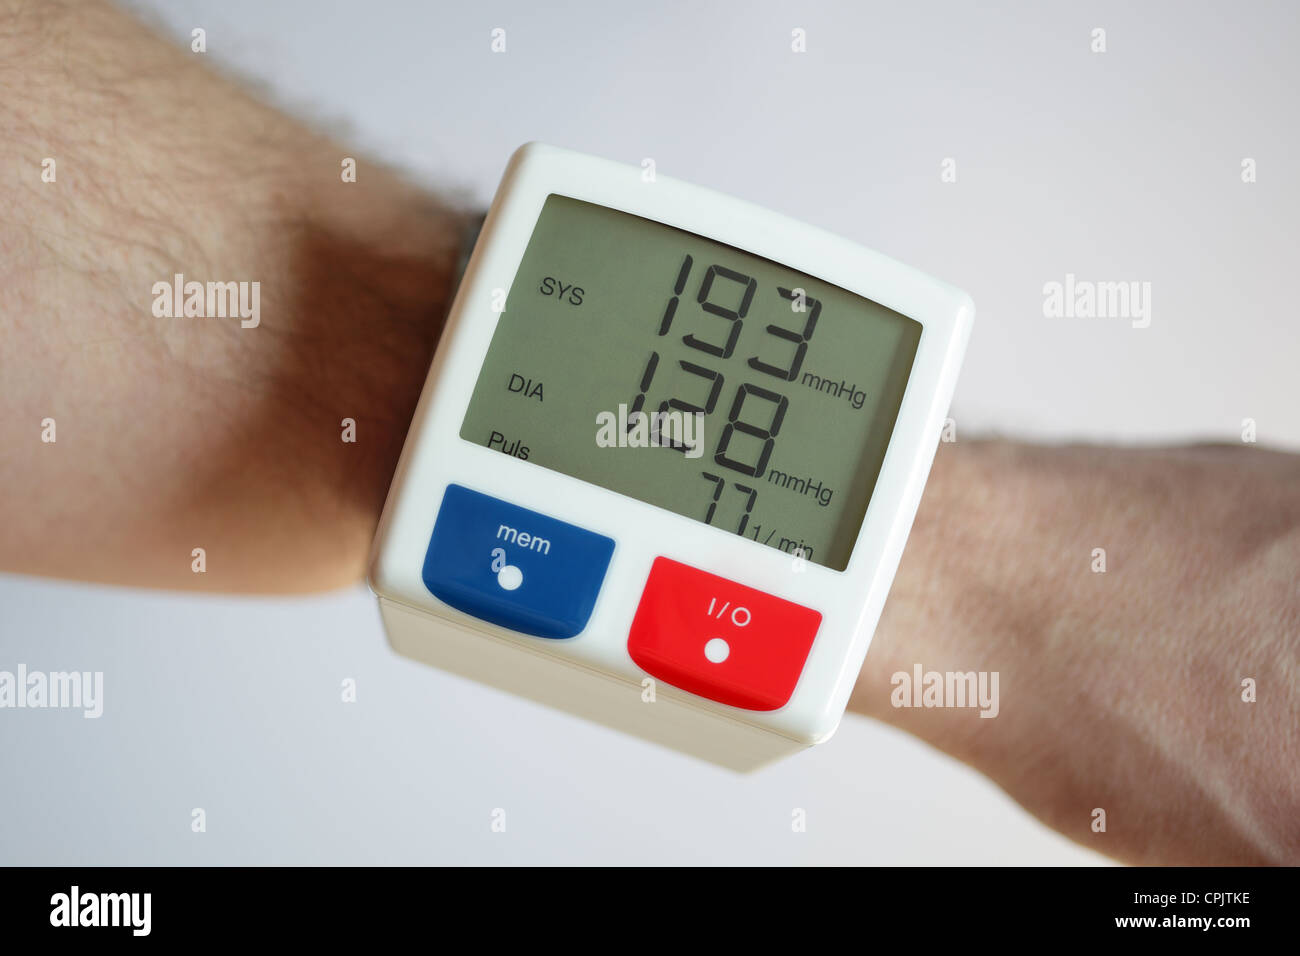 High blood pressure - Stock Image